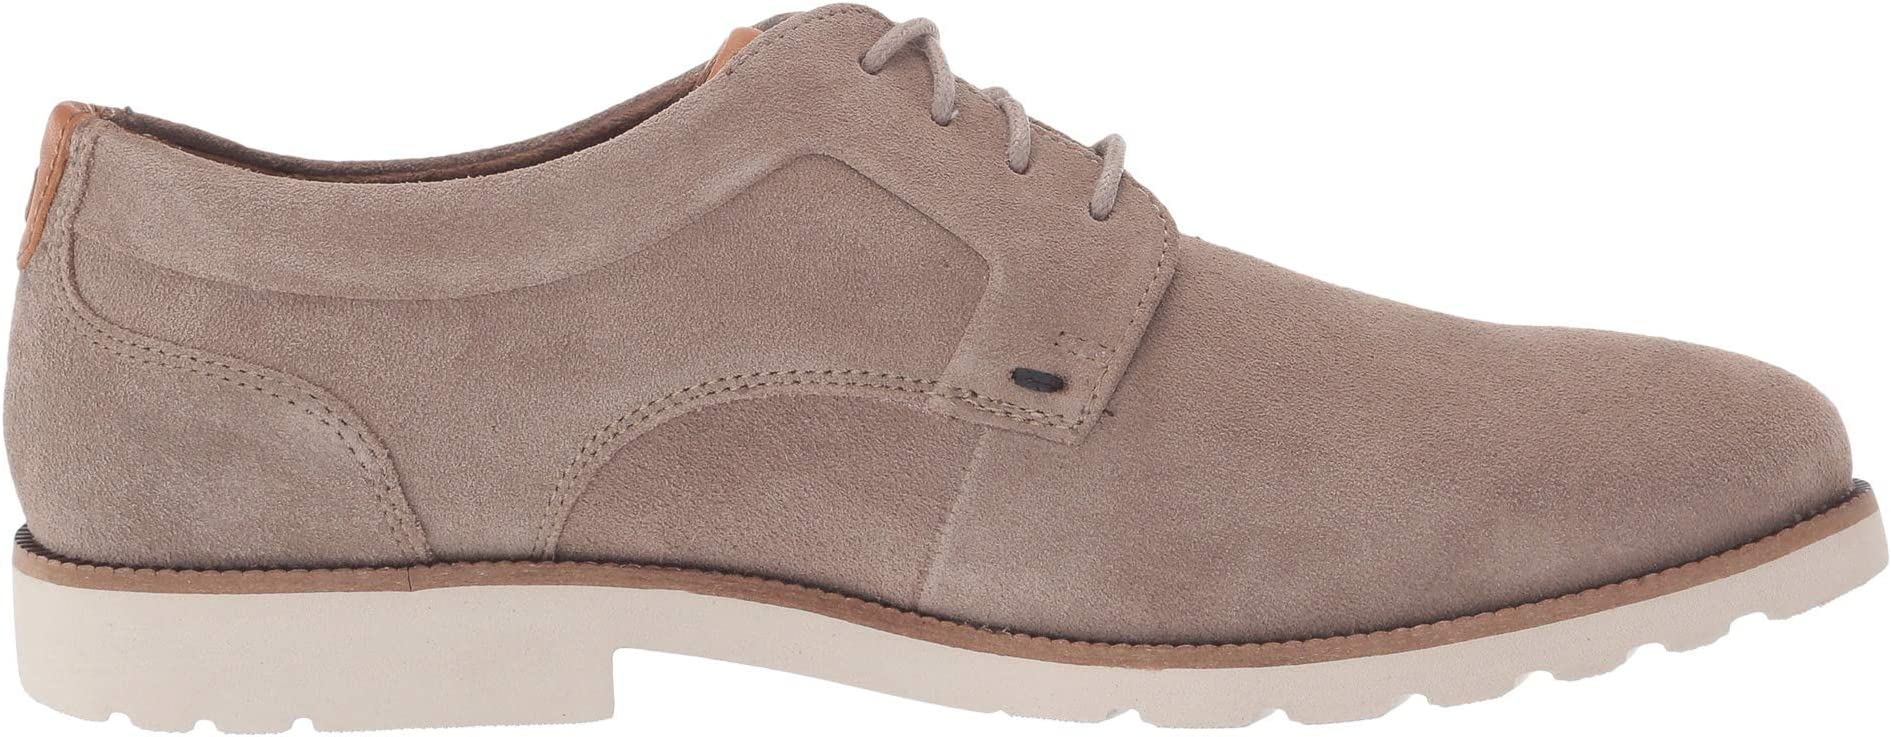 Rockport Sharp and Ready 2 Plain Toe | Men's shoes | 2020 Newest